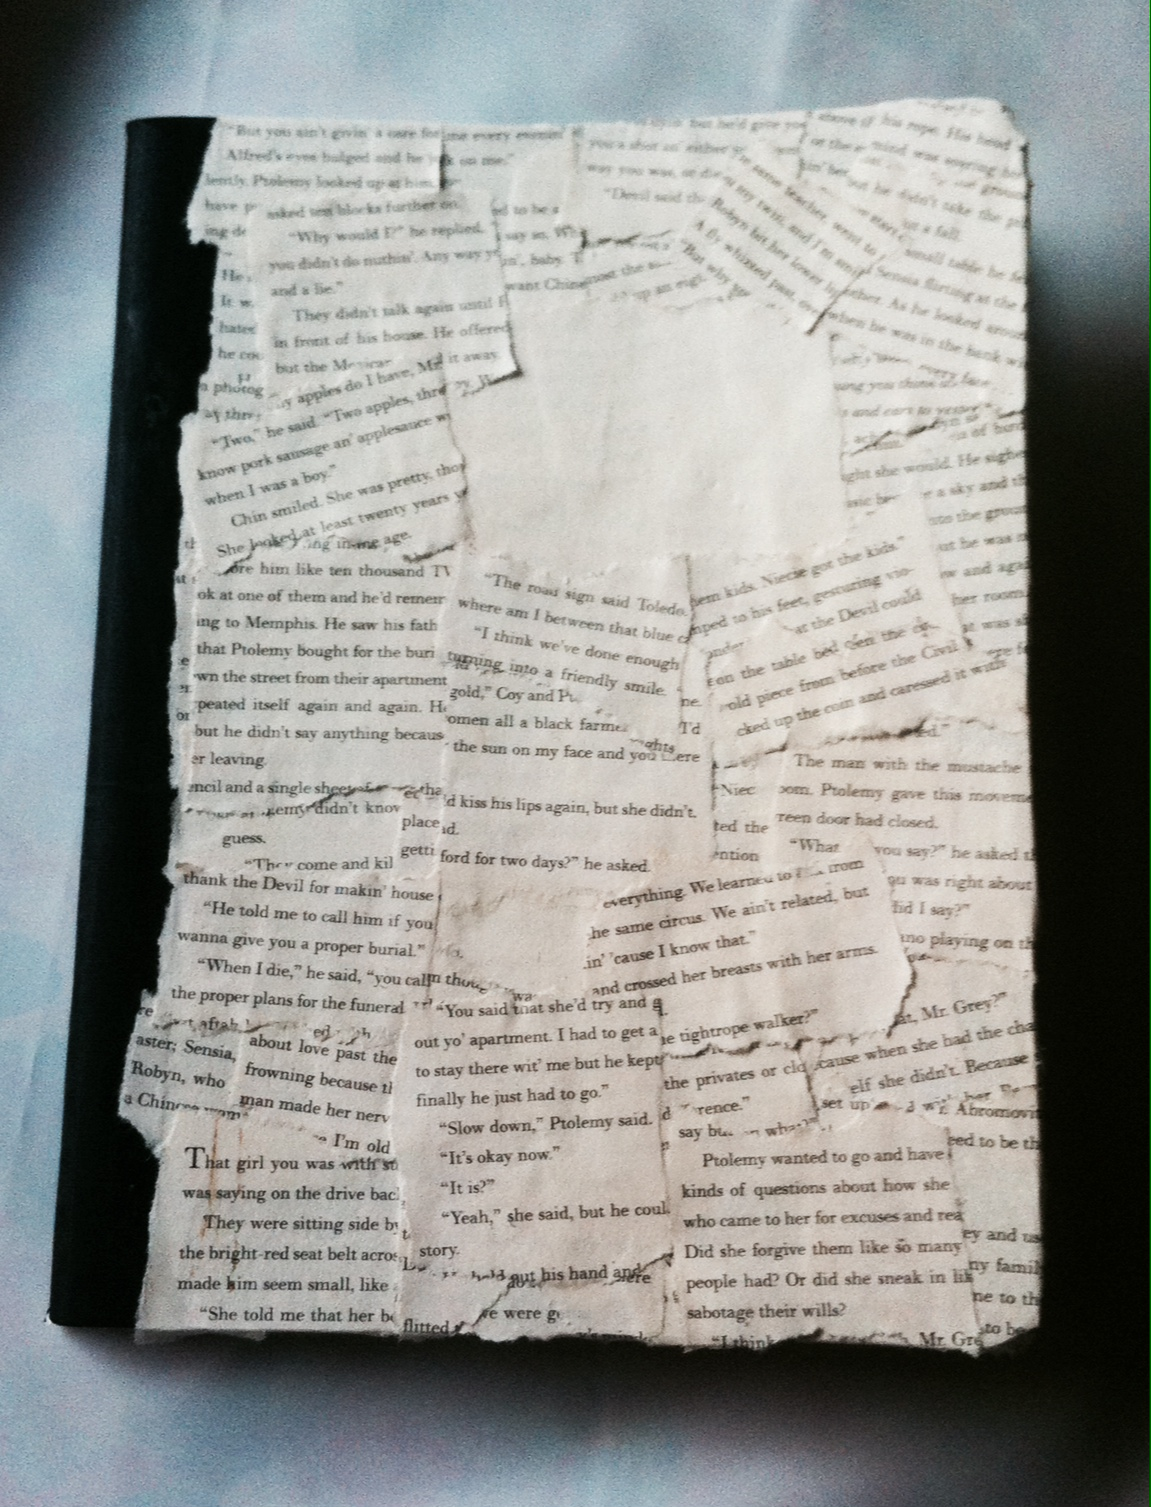 Diy Book Cover Without A Paper ~ Take cover delightful diy book covers brightly